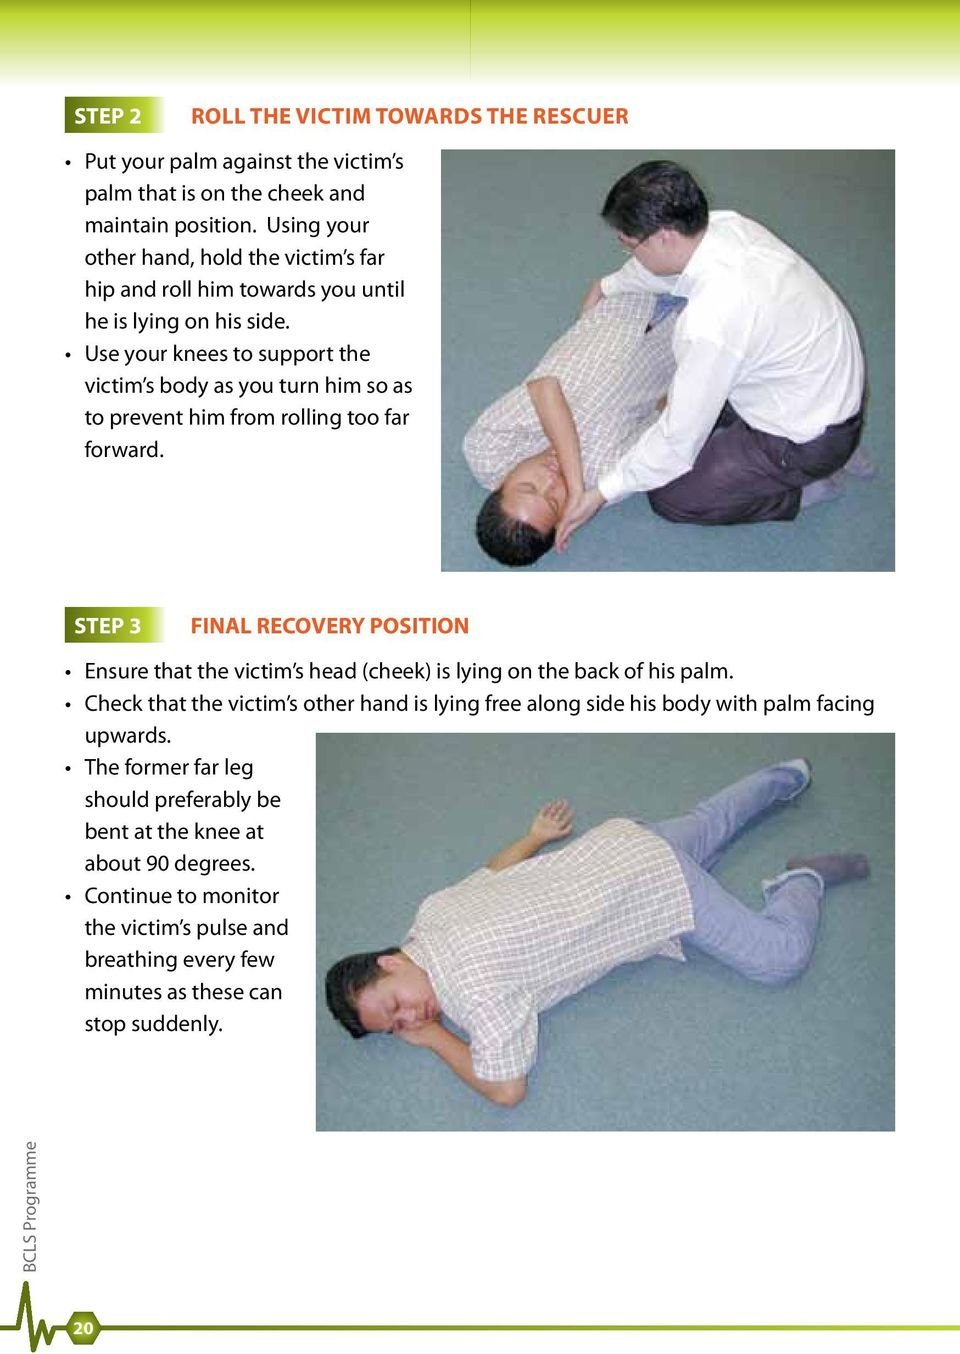 Use your knees to support the victim s body as you turn him so as to prevent him from rolling too far forward.